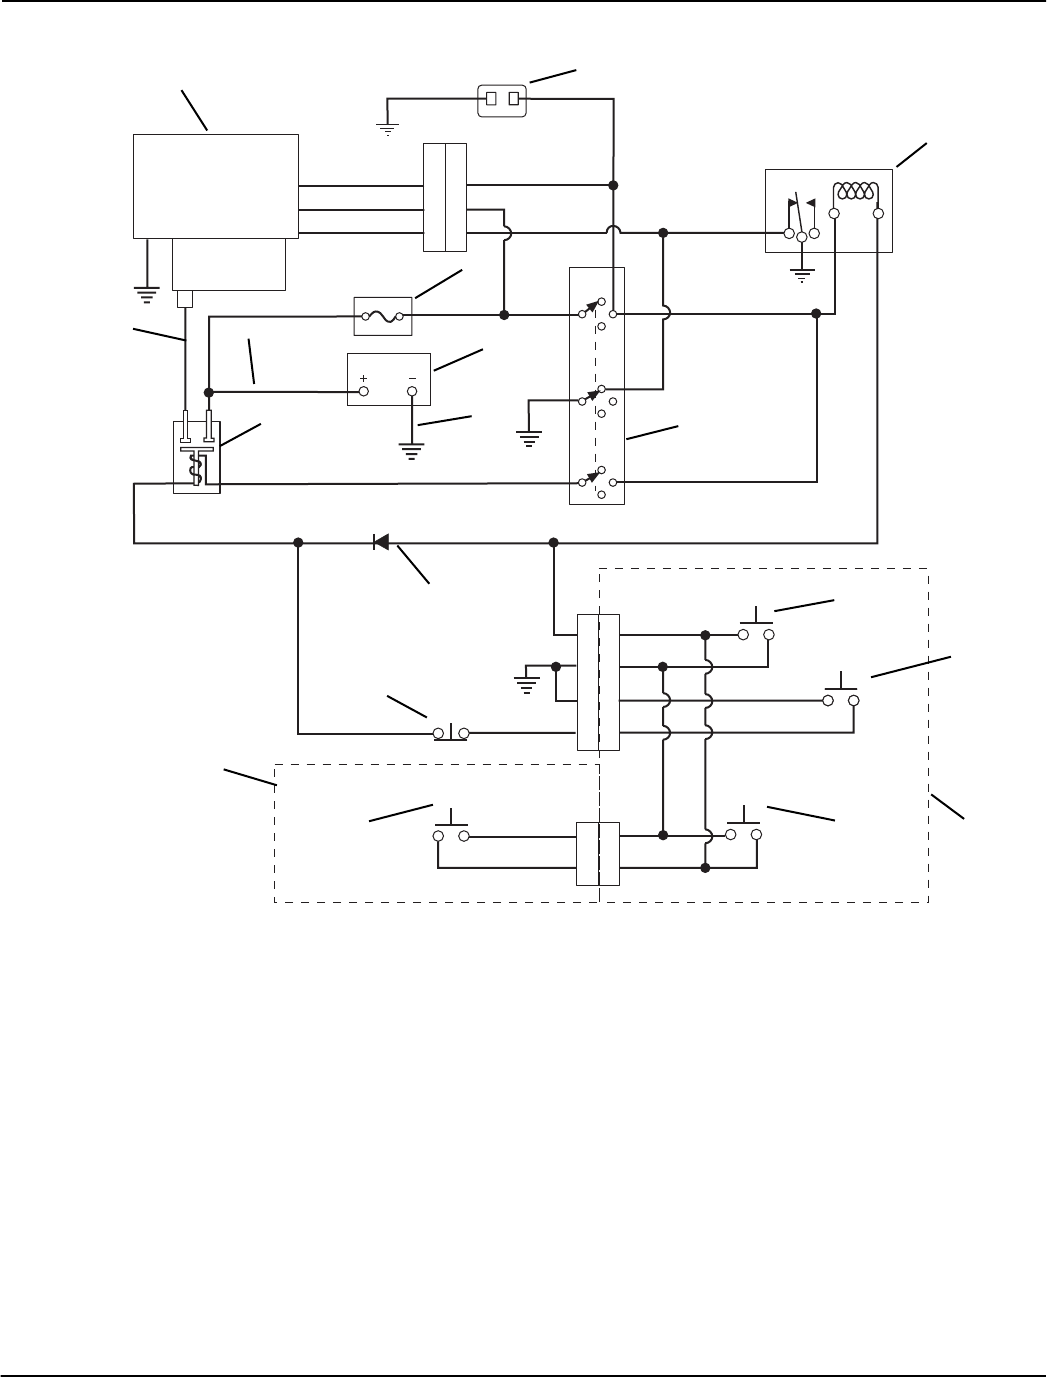 old hot water pressure washer wiring diagrams hotsy    wiring       diagram       wiring       diagram    virtual fretboard  hotsy    wiring       diagram       wiring       diagram    virtual fretboard